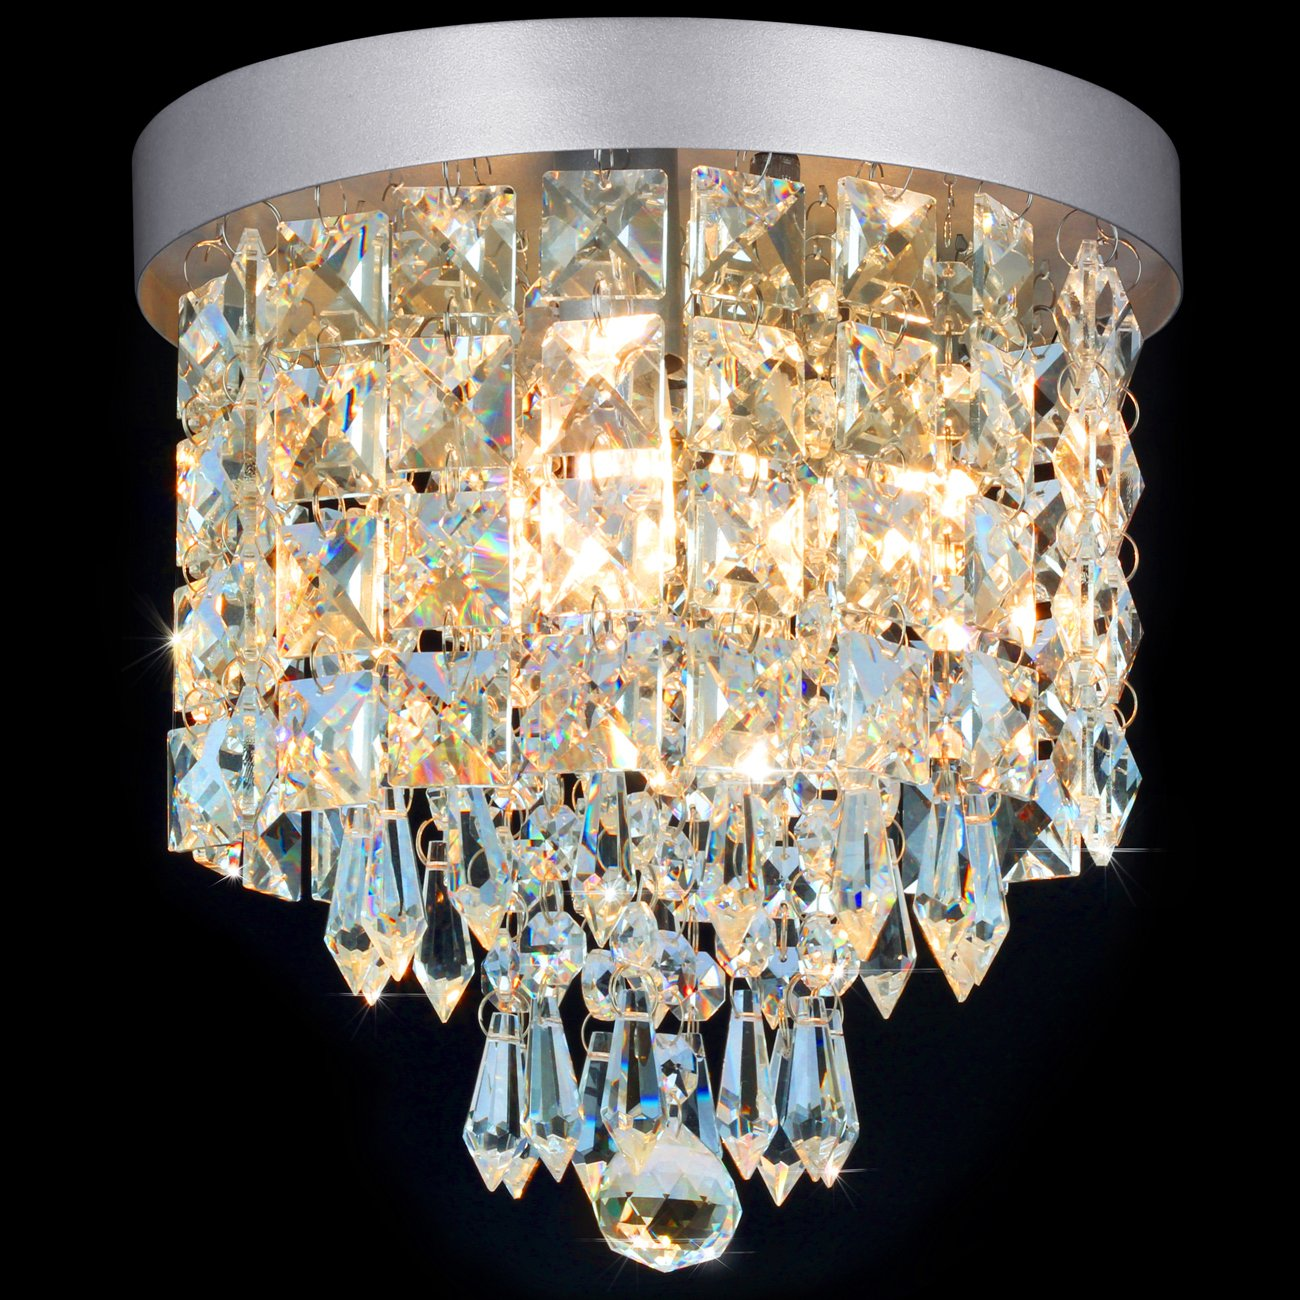 SHINE HAI Crystal Chandelier, 3-light Modern Flush Mount Ceiling Pendant Light H9.45'' X W8.66'' for Bedroom, Living Room, Dining Room, Kitchen, Hallway